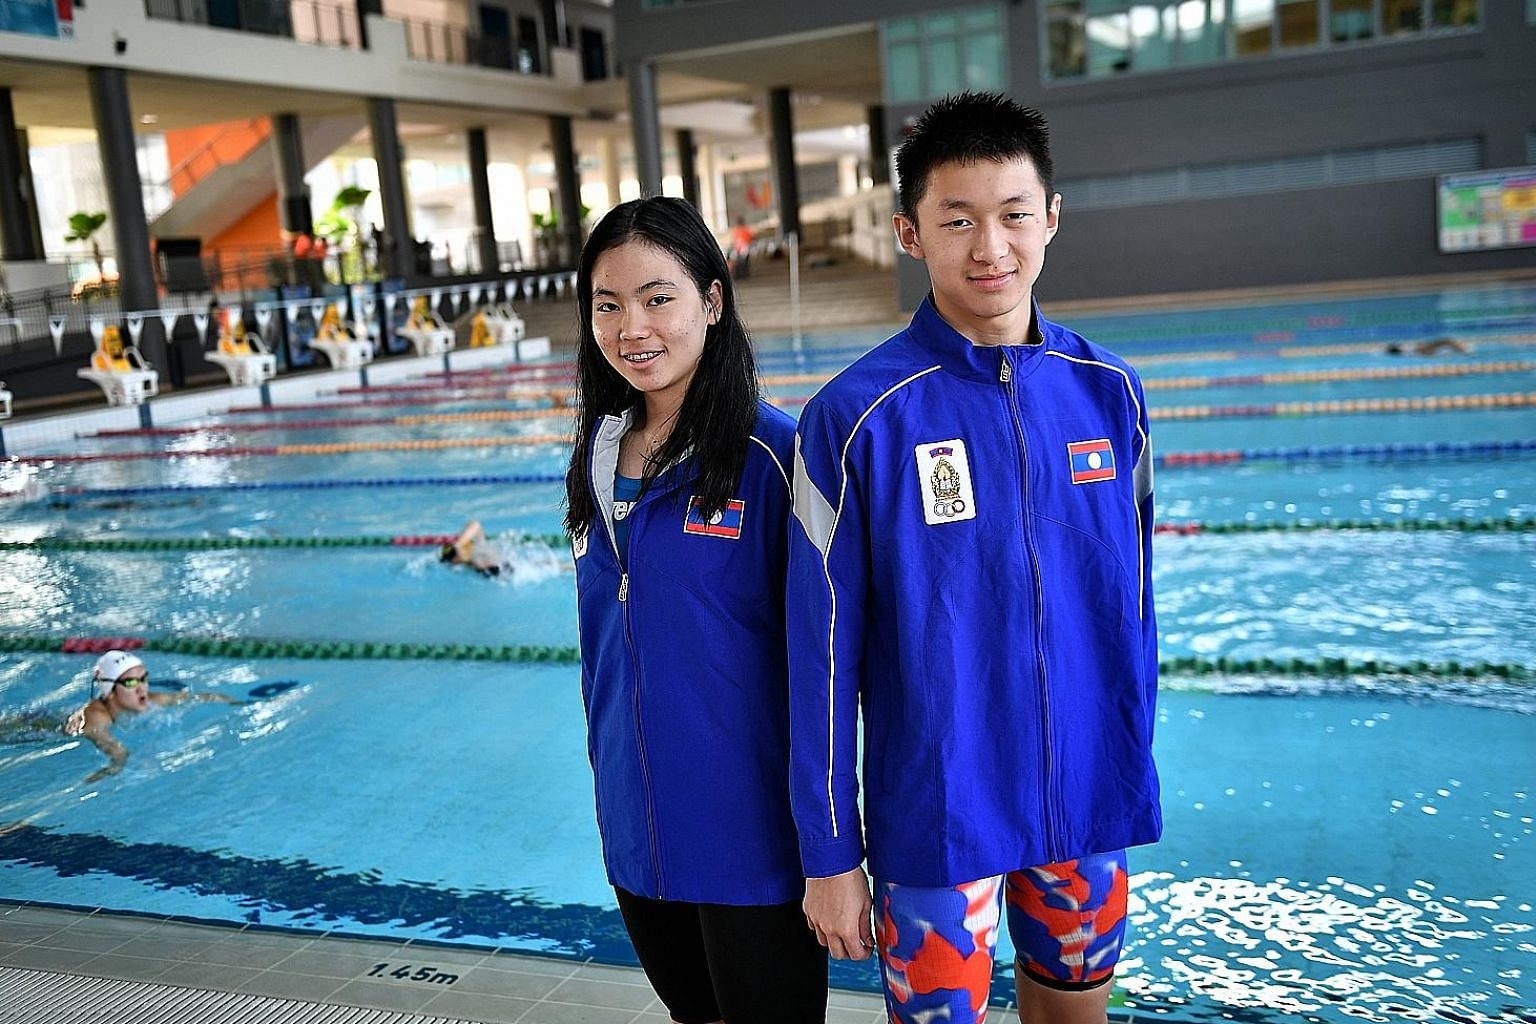 Laos' Siri Arun Budcharern and Santisouk Inthavong aspire to become better swimmers after receiving wild-card entries to compete at last year's Rio de Janeiro Olympics.